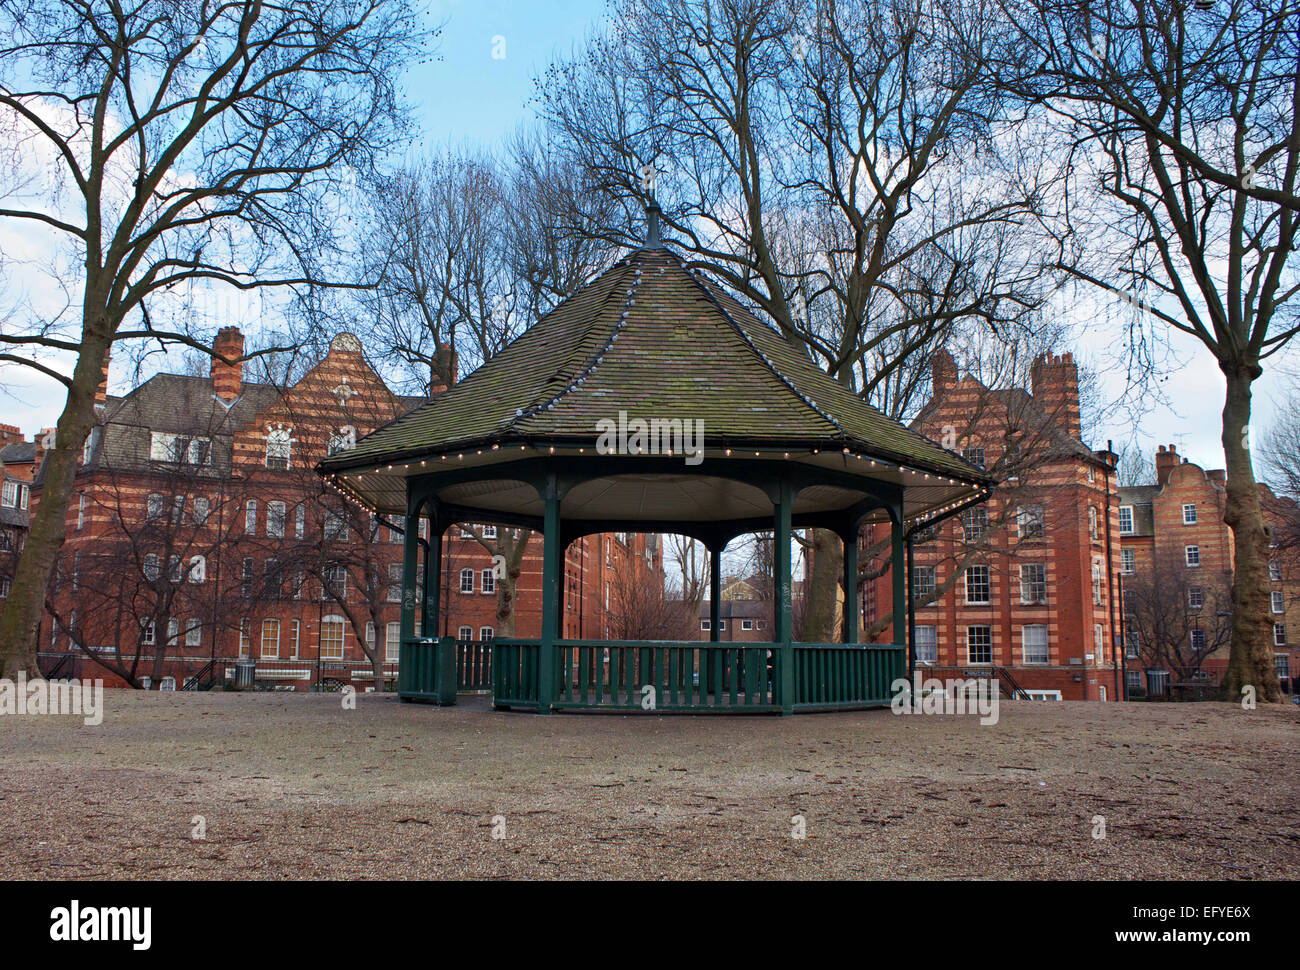 En kiosque Arnold Circus, Londres, Angleterre Photo Stock